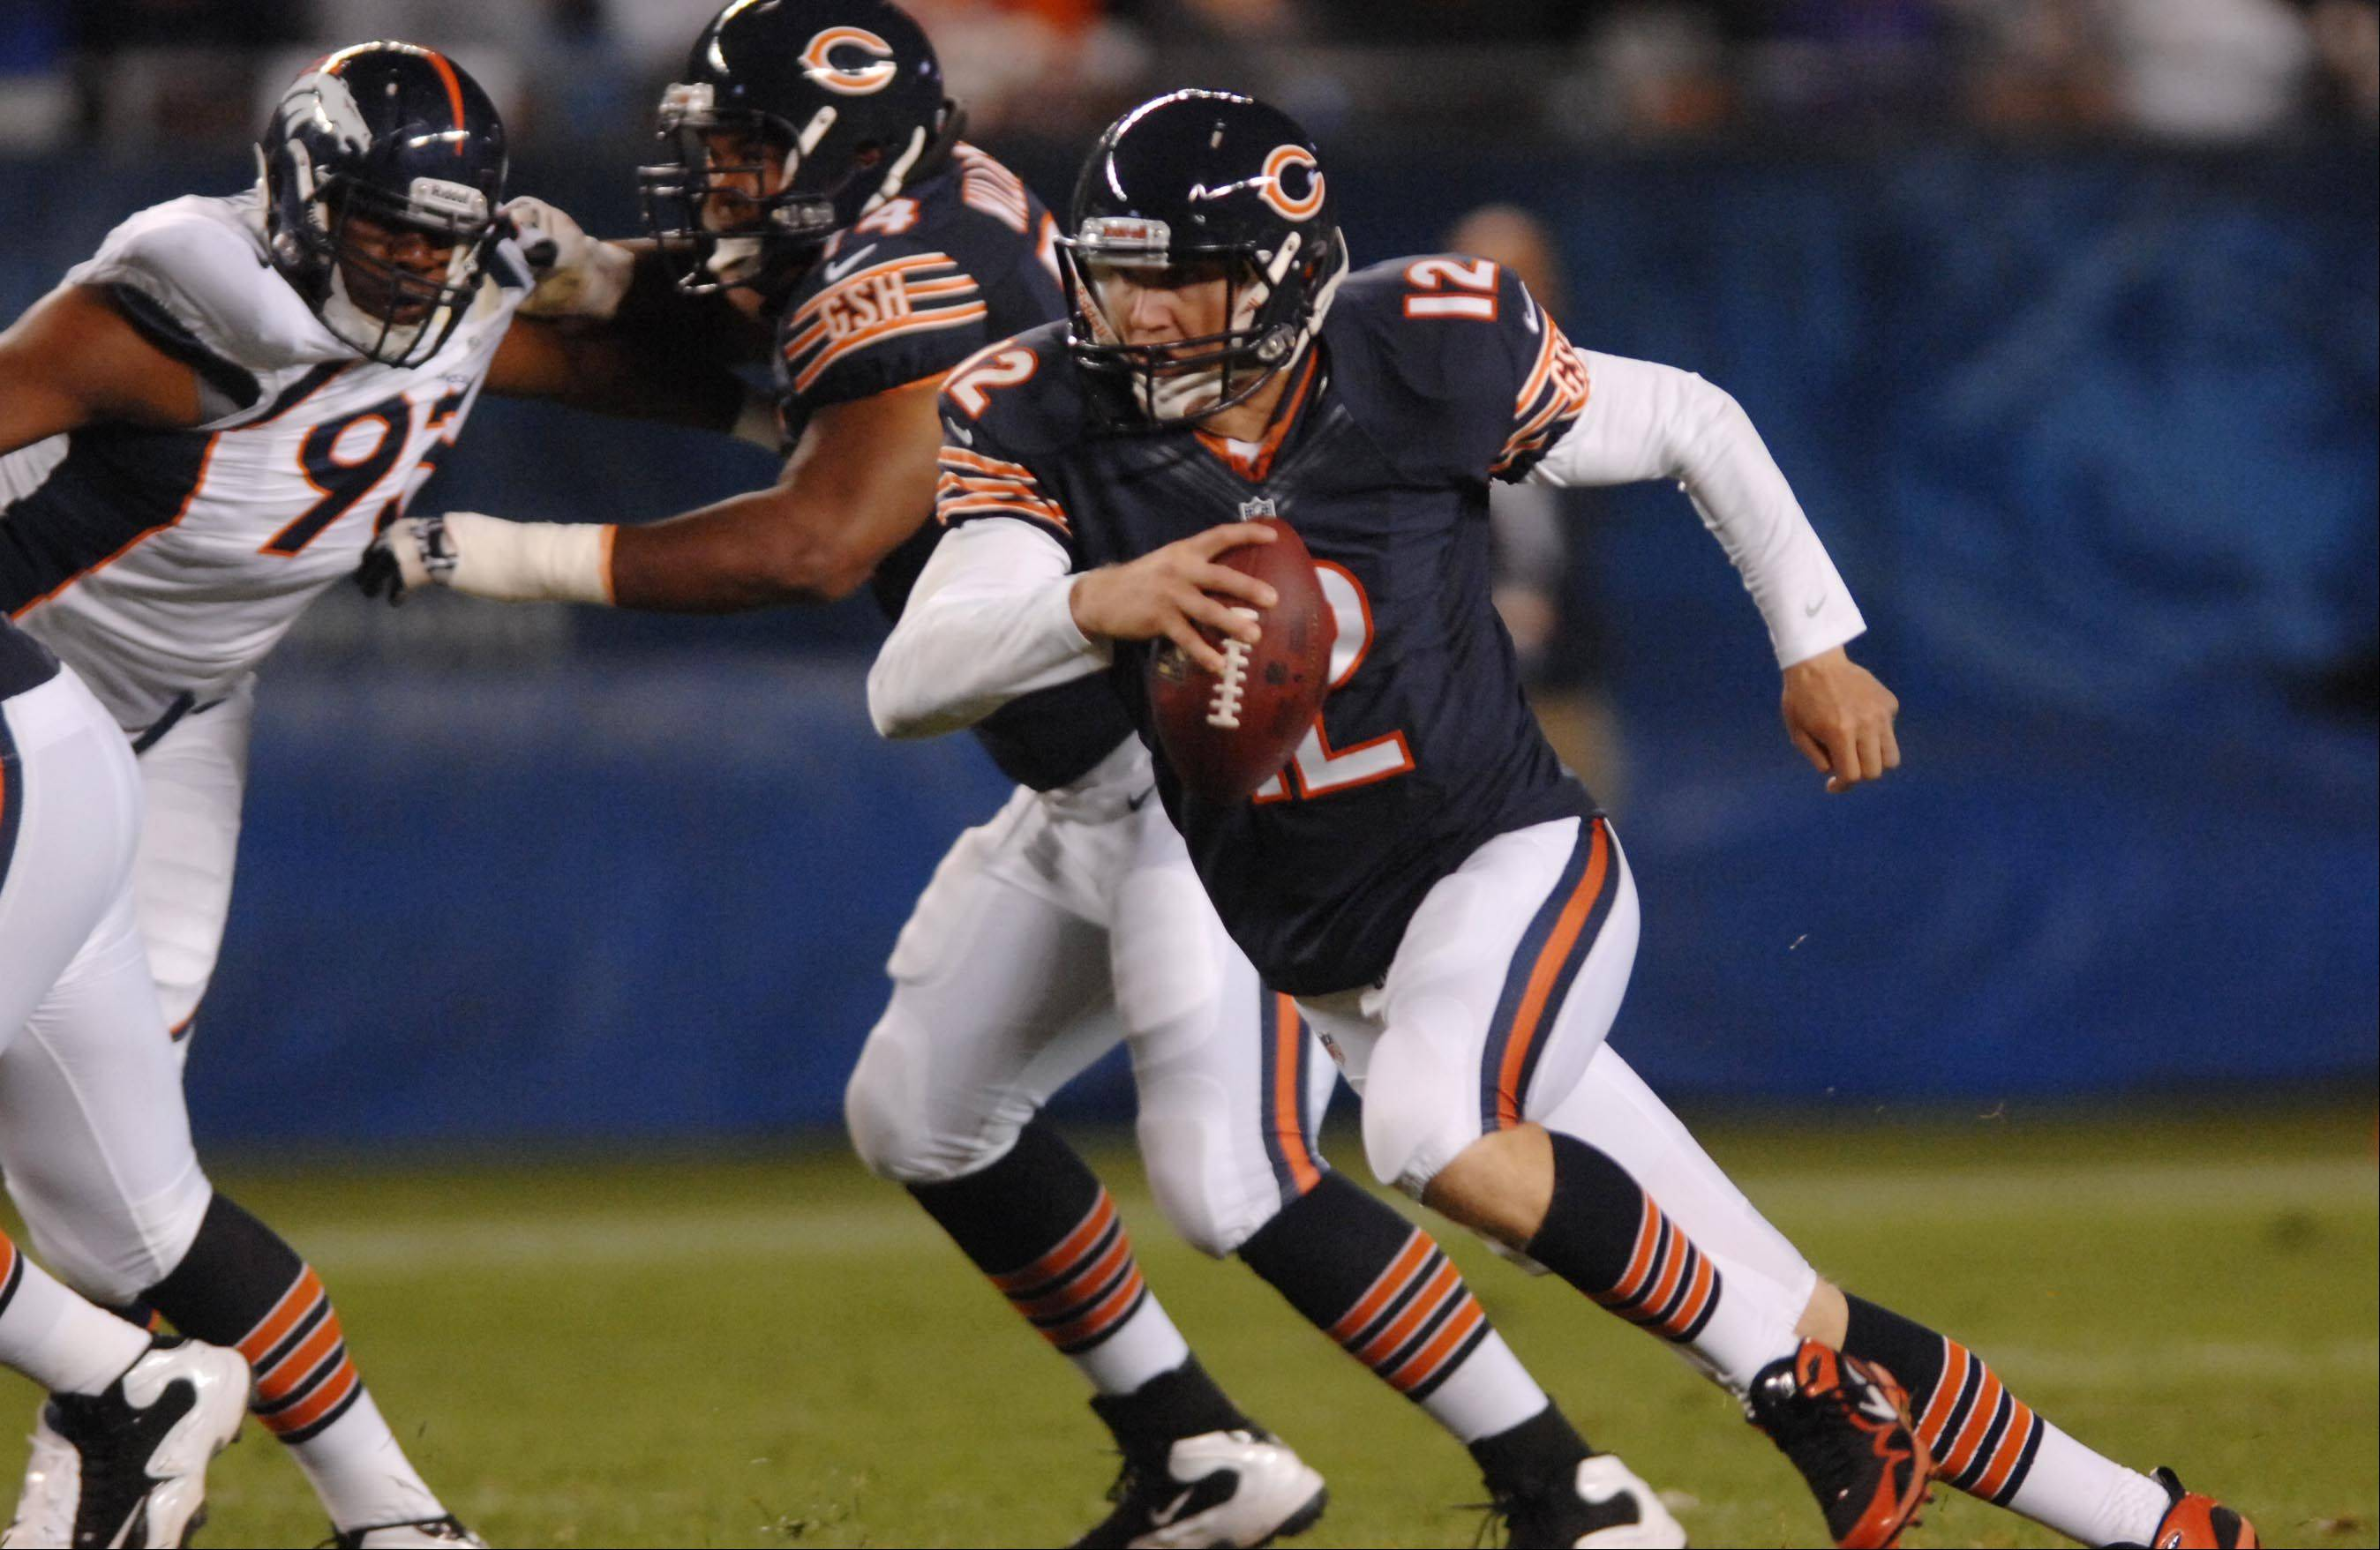 Chicago Bears quarterback Josh McCown takes off on a run.